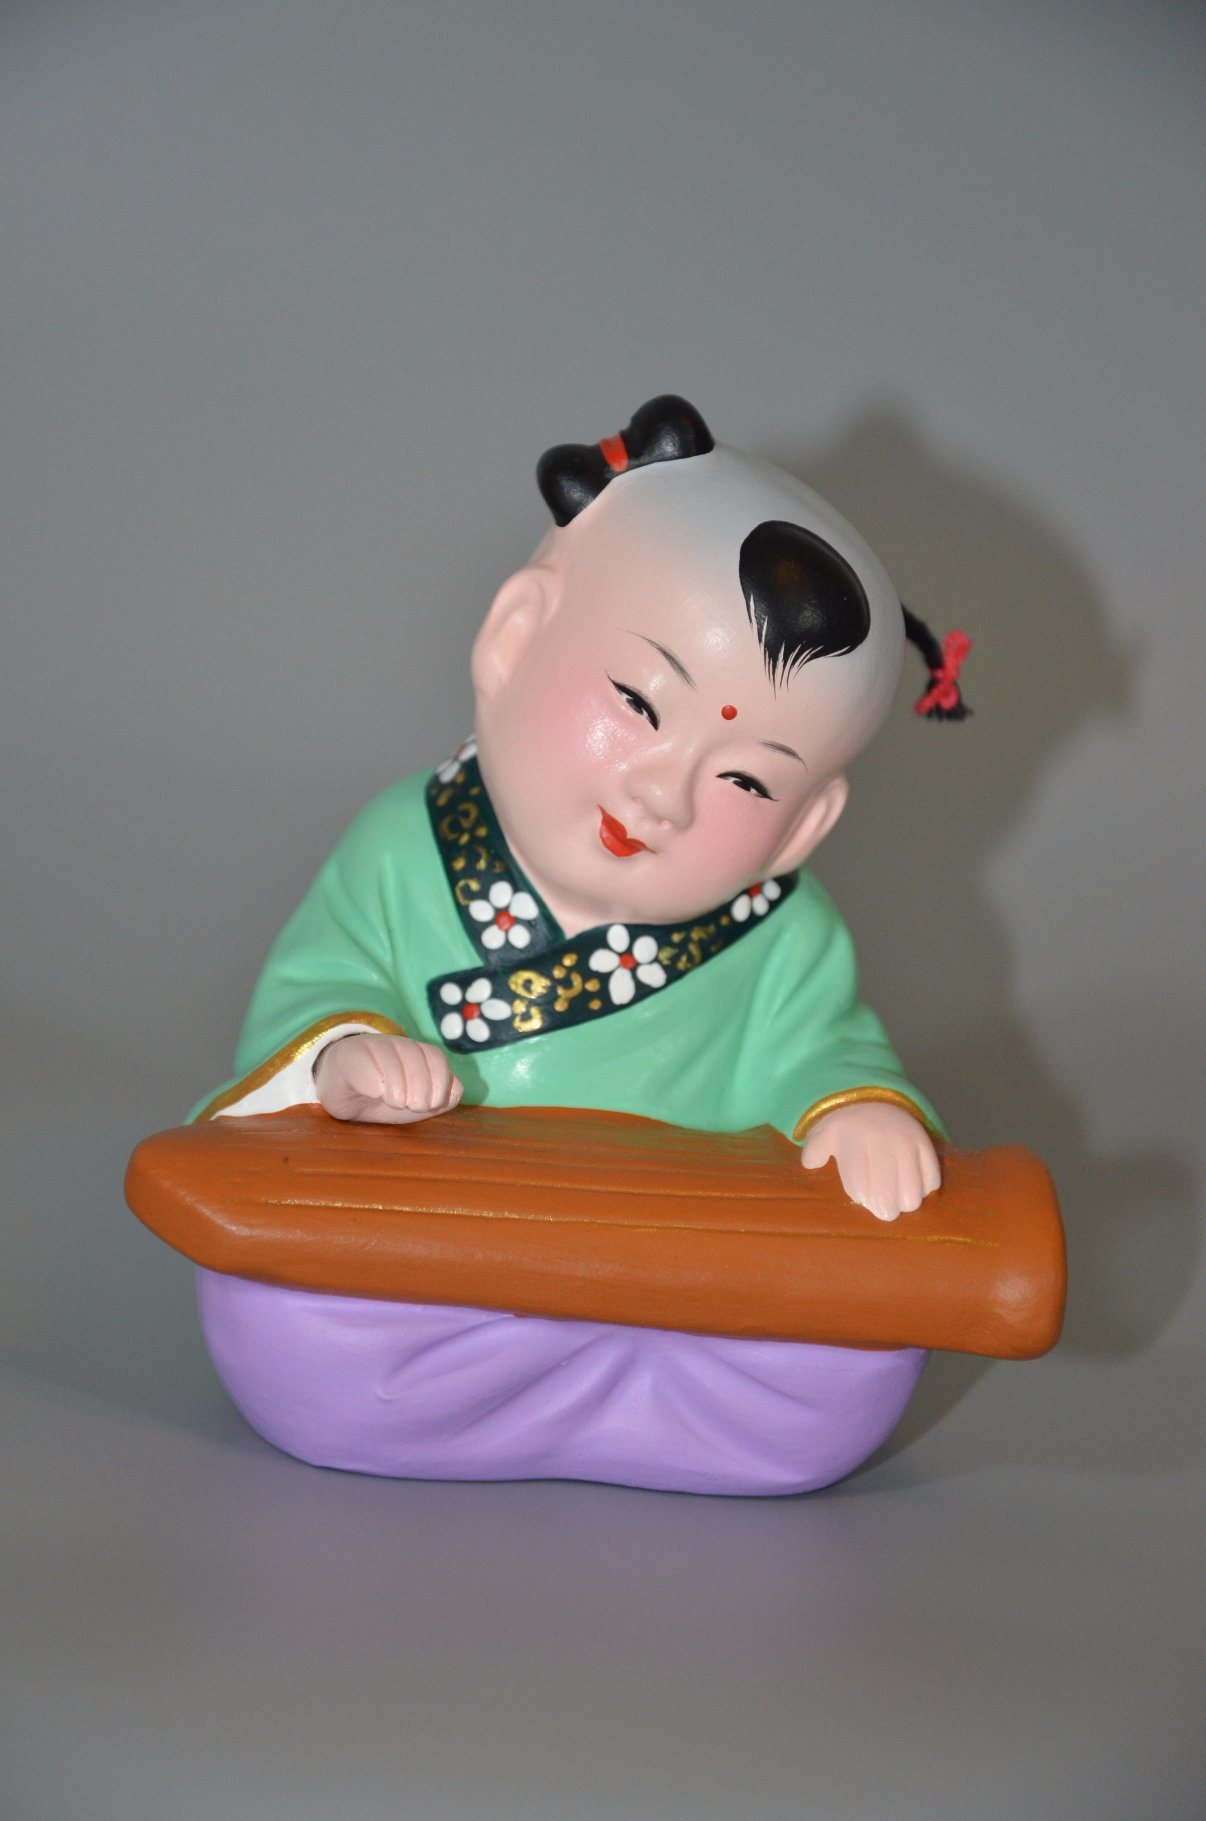 Chinese Traditional Baby Made From Red Clay